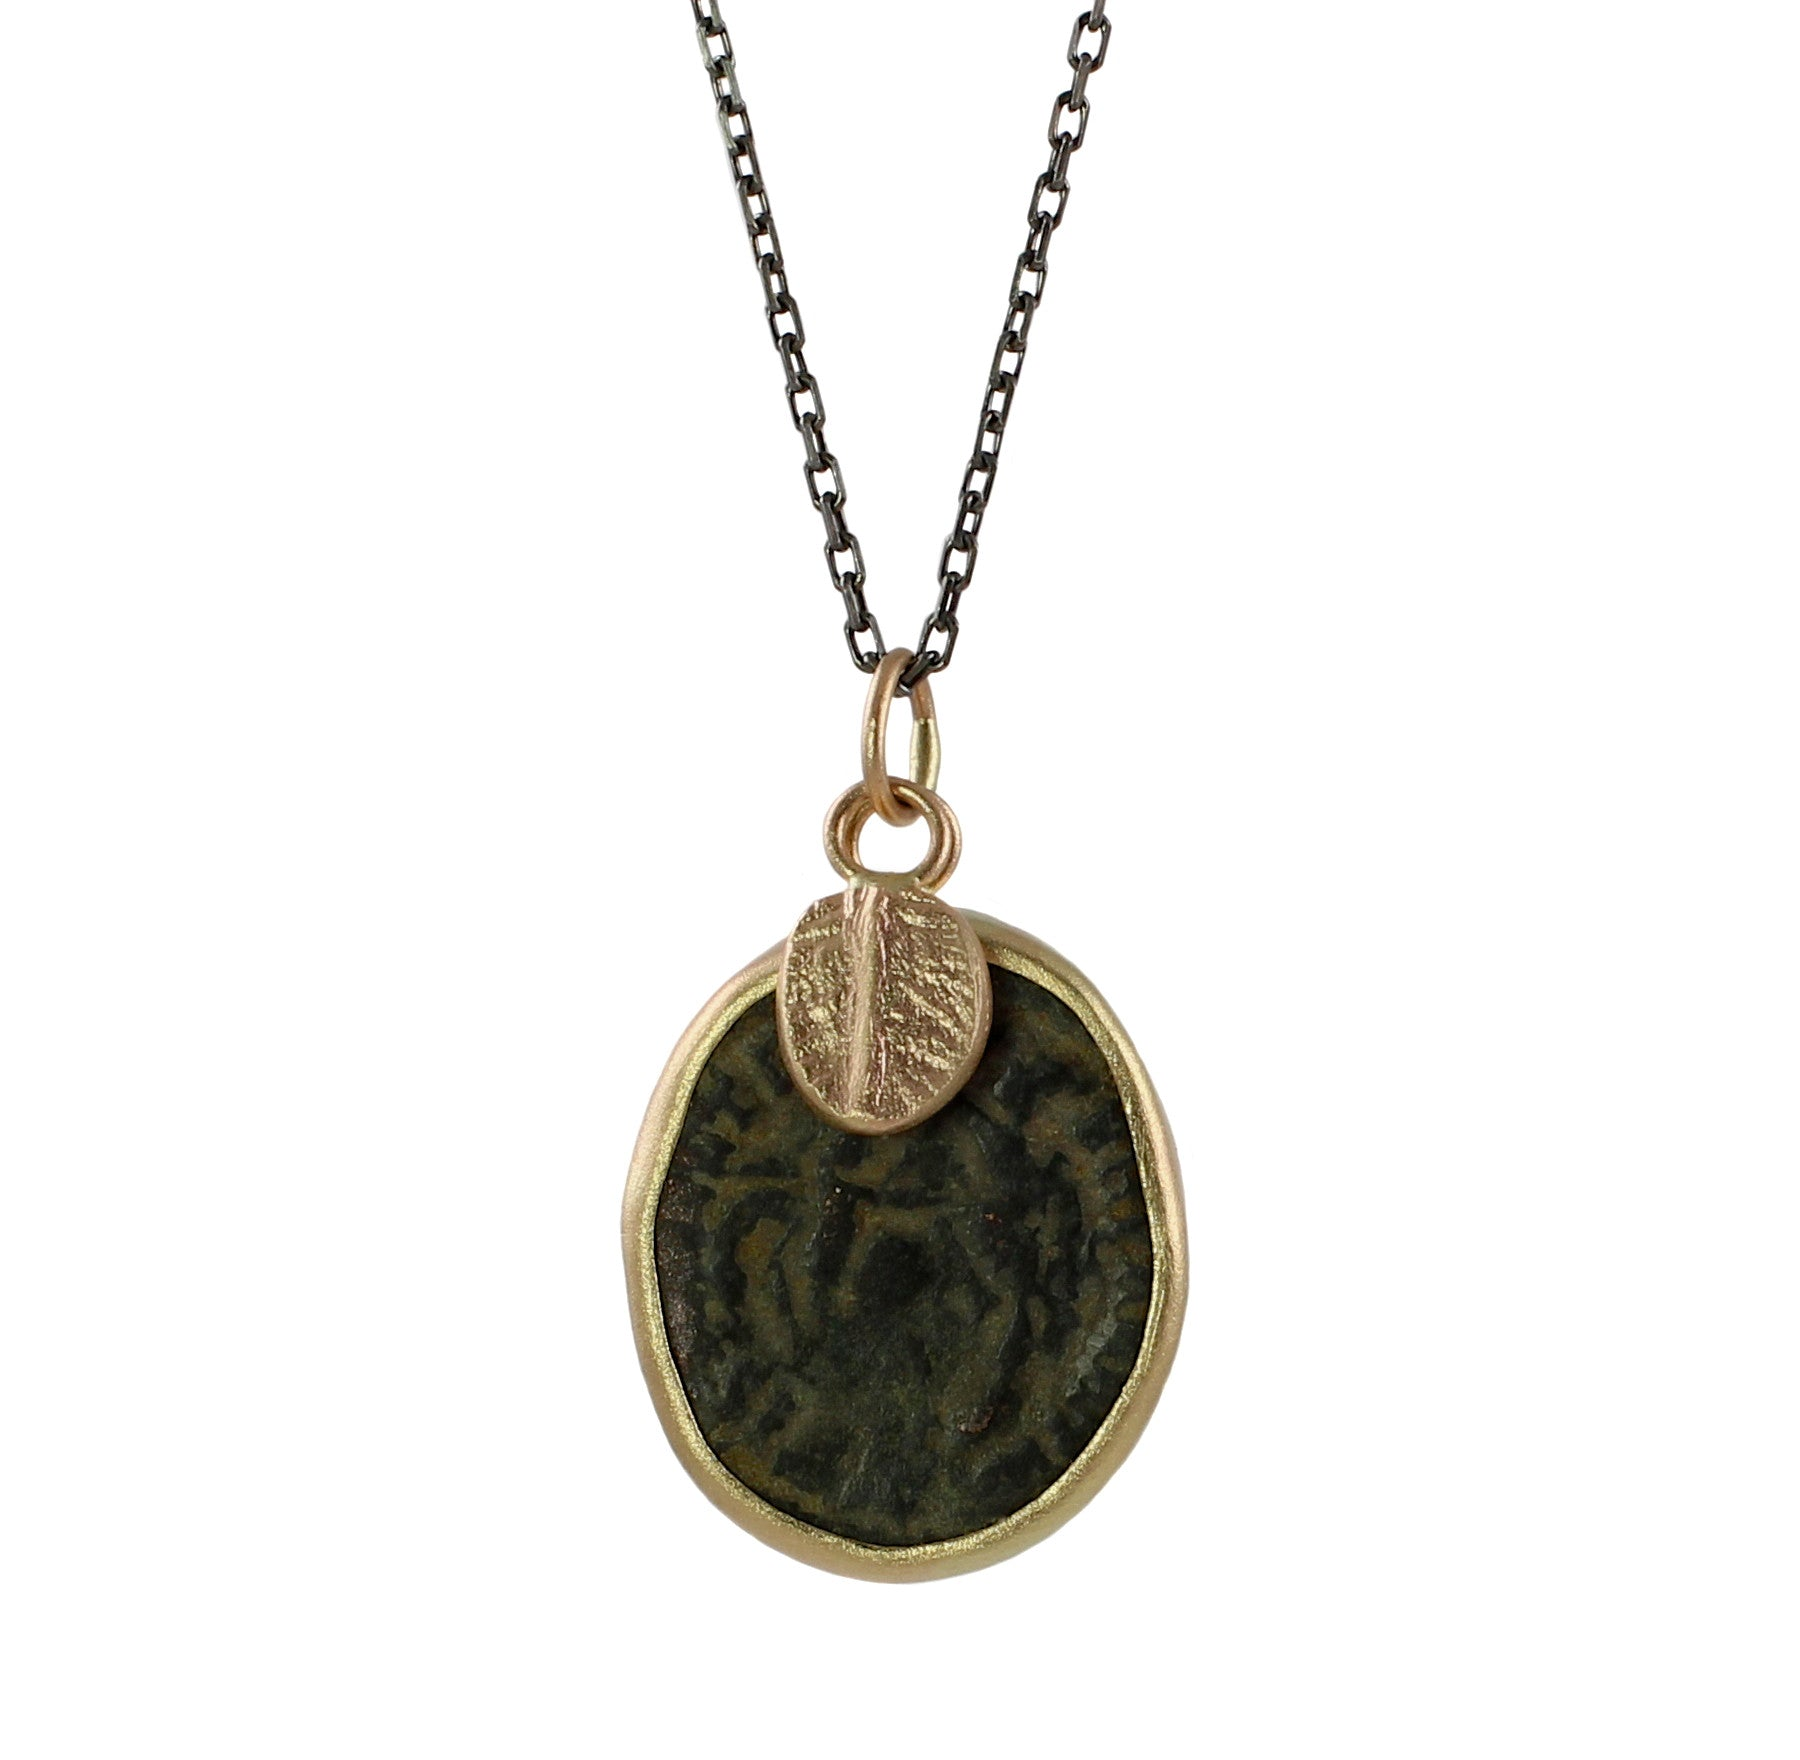 augustus bondanza raine coin by roman michael turgeon divus product necklace